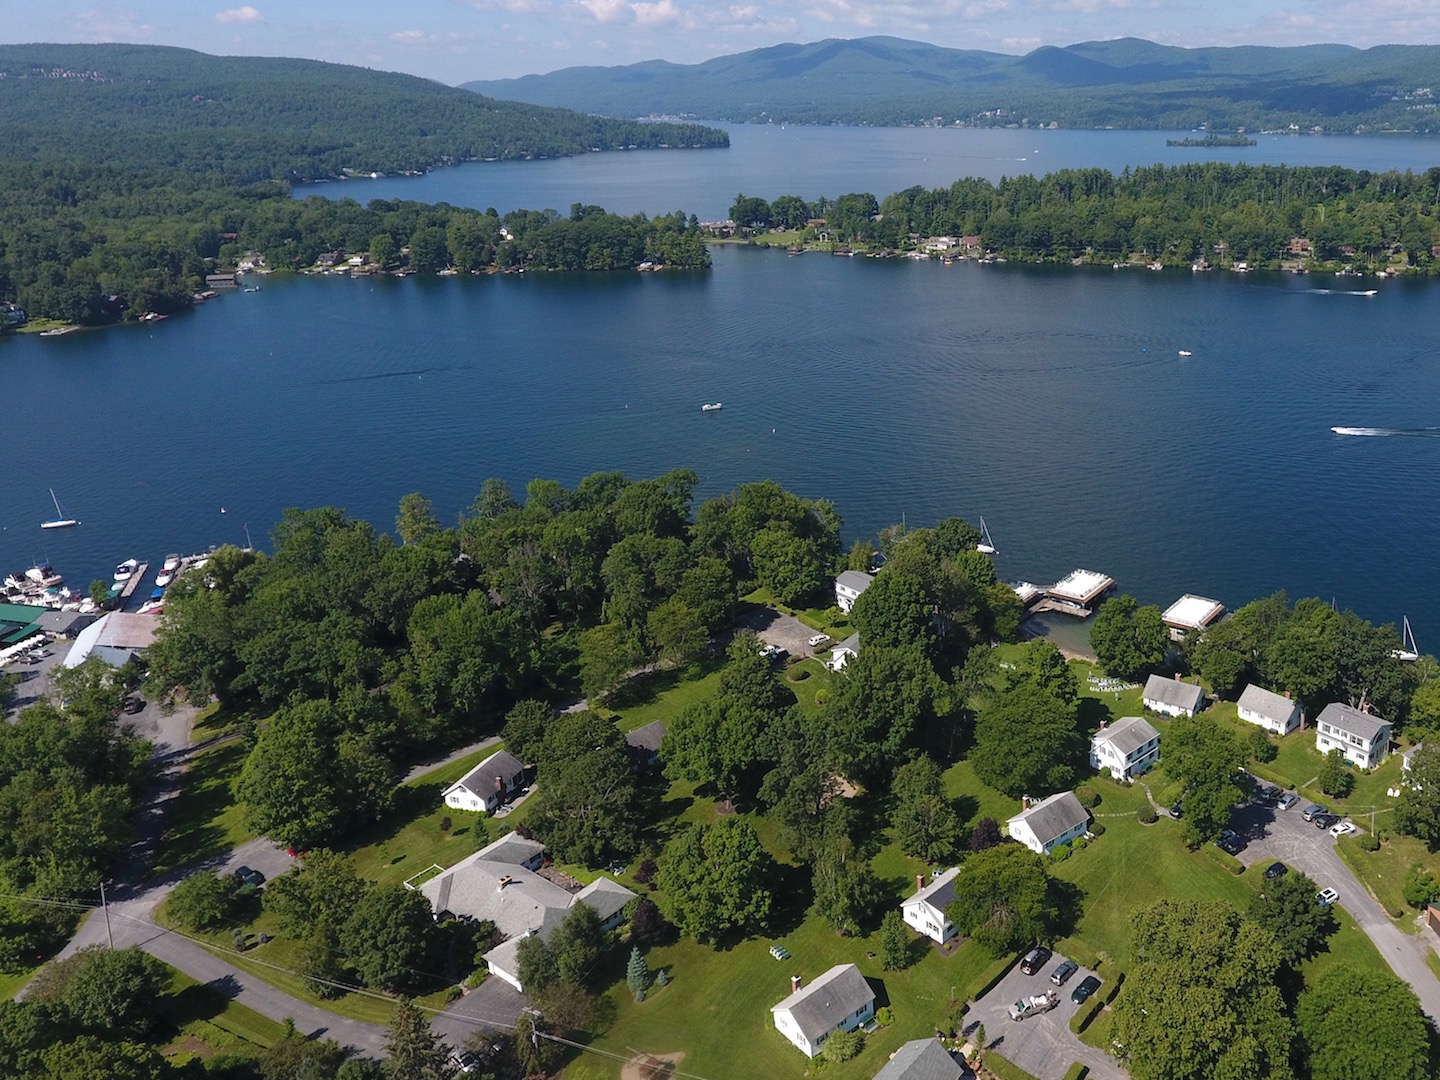 Lake George vacation cabin rentals at Takundewide Cottages on Lake George